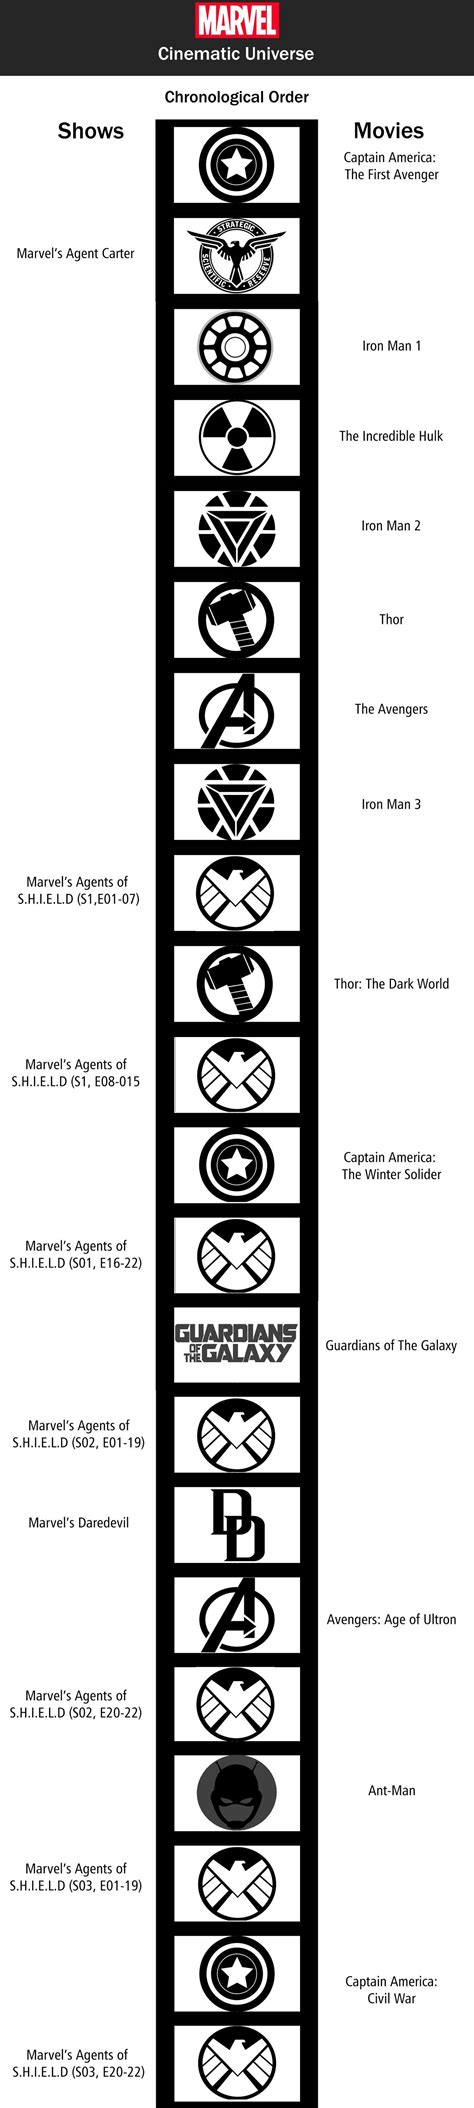 how to watch marvel movies tv shows in order infographic marvel movies and shows in chronological order jessica